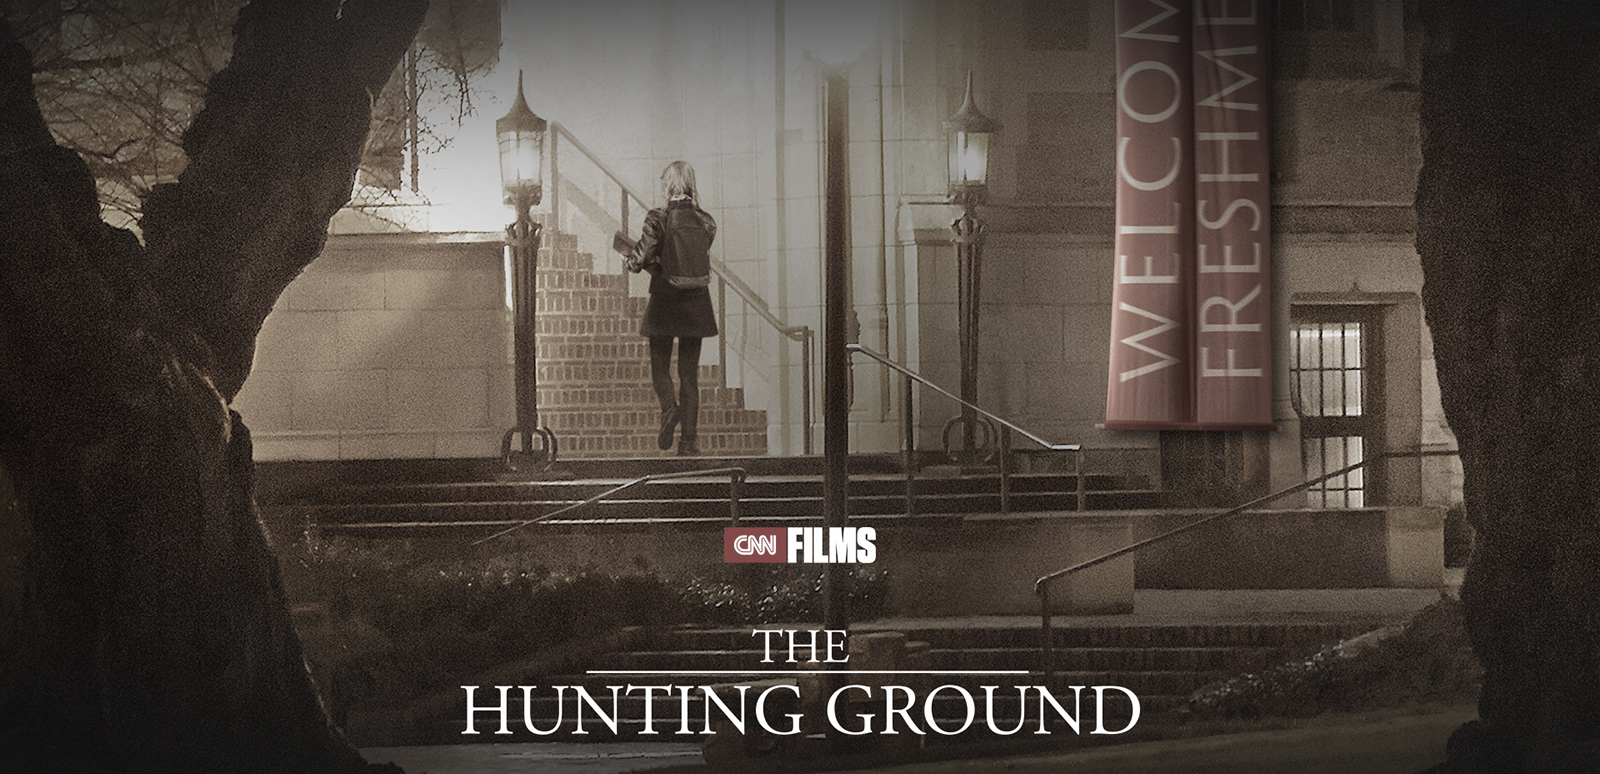 CNN Films: The Hunting Ground – Attorney Douglas Fierberg Adds to the Film Over 20 Years of Litigation Experience of Fighting Against Campus Sexual Assault